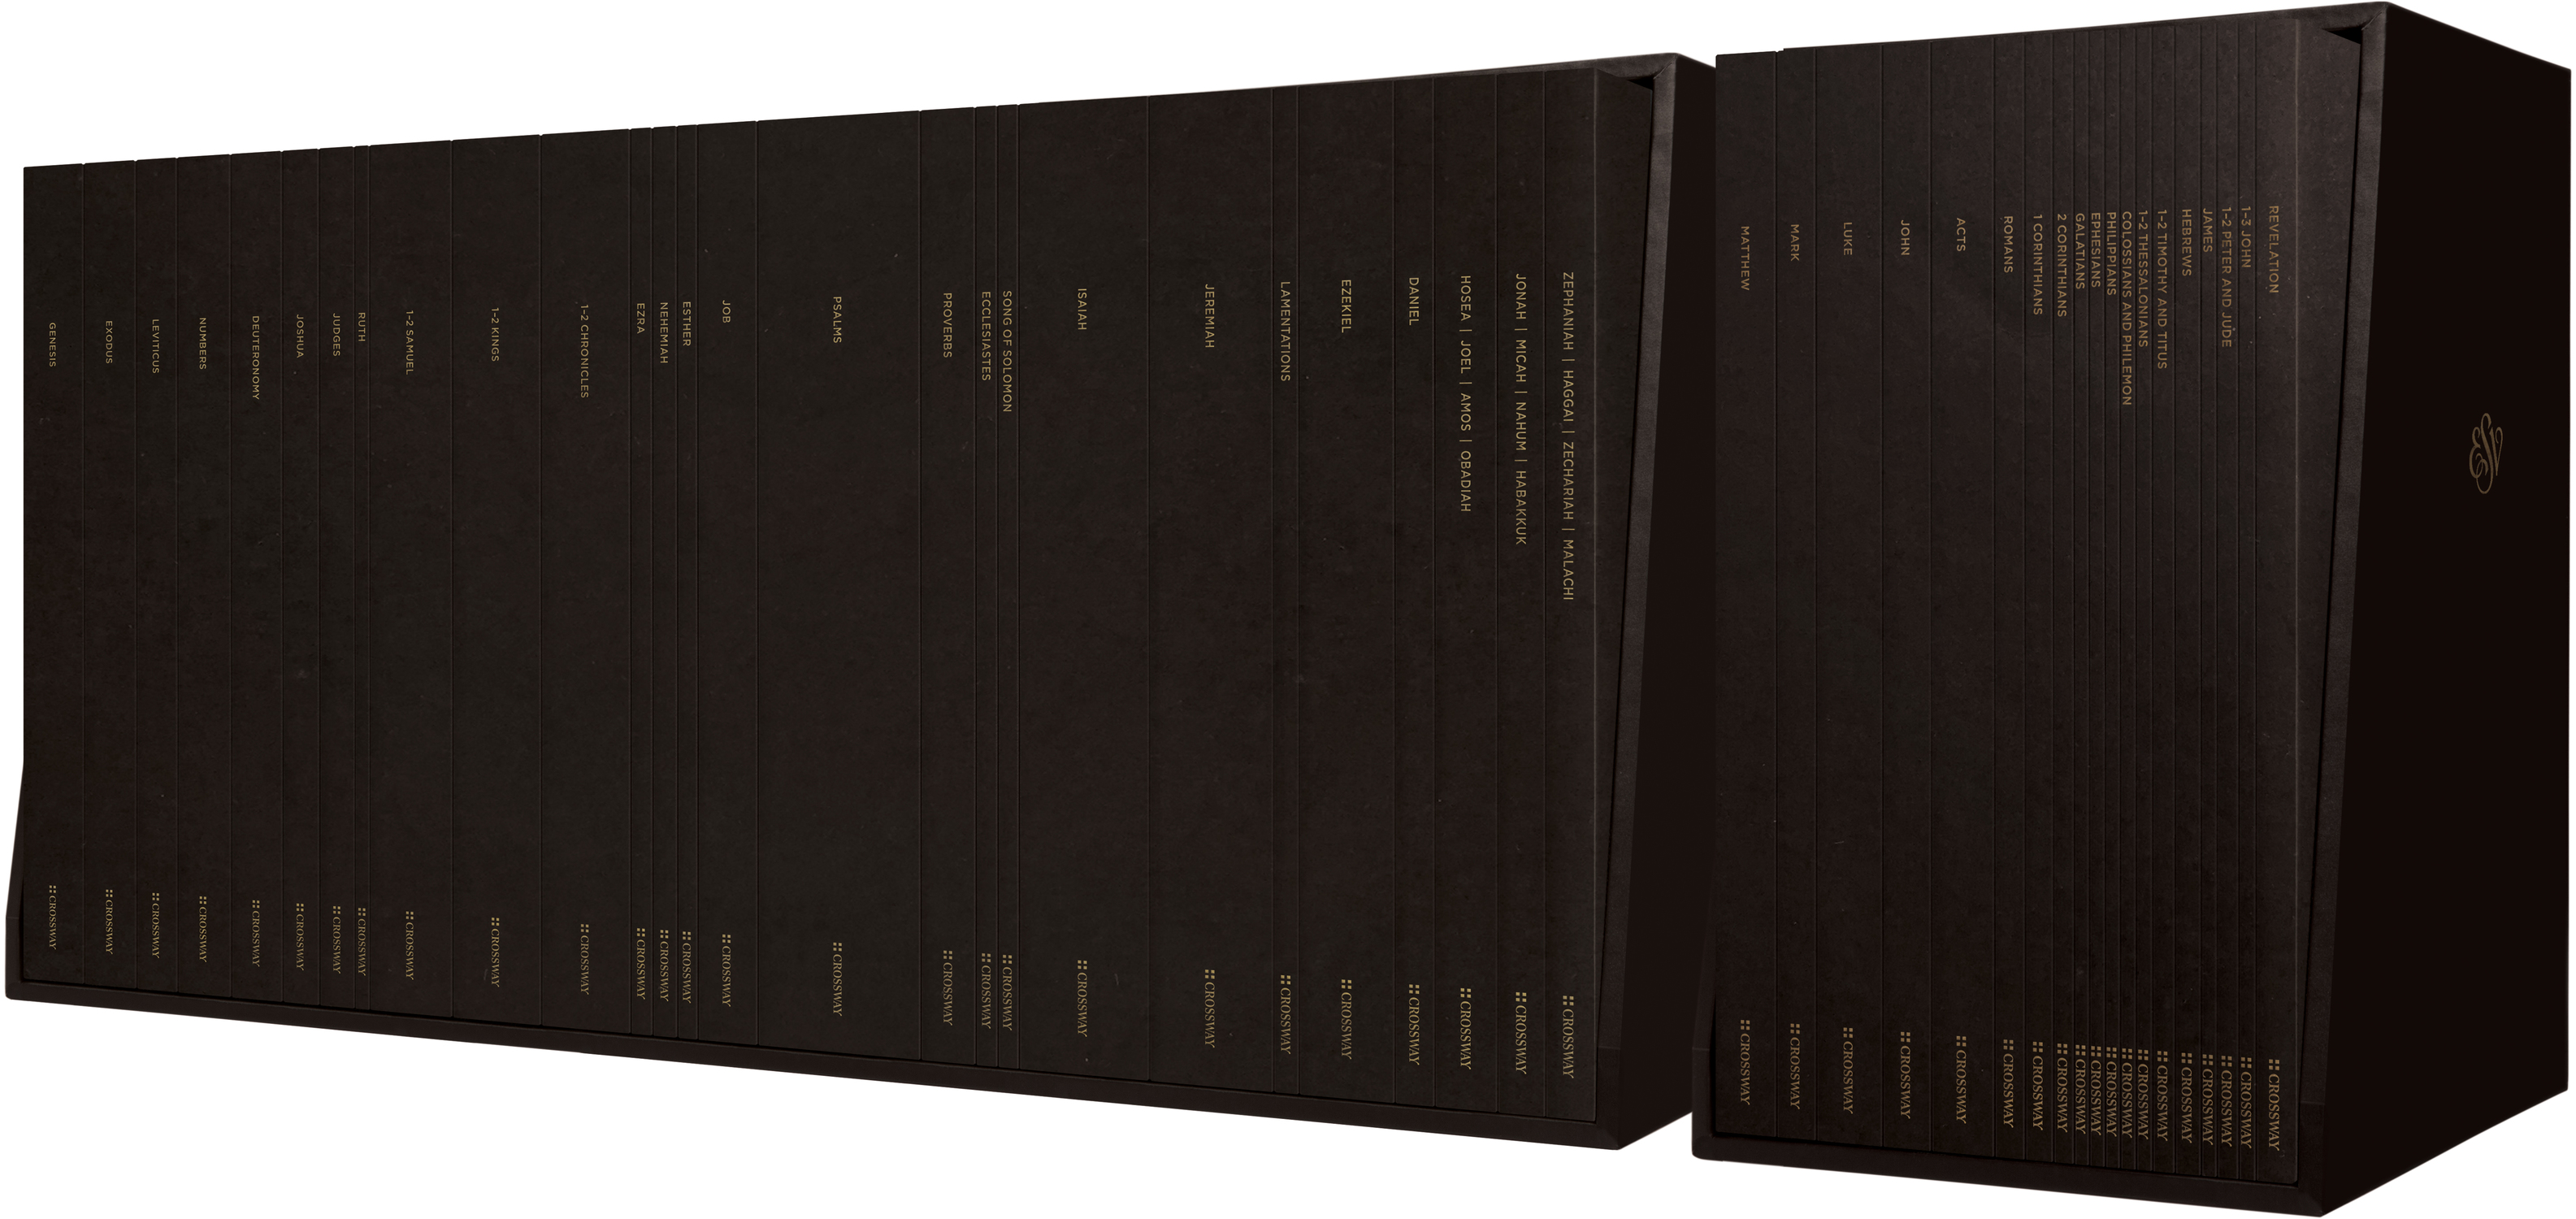 ESV Scripture Journal: Old and New Testament Sets